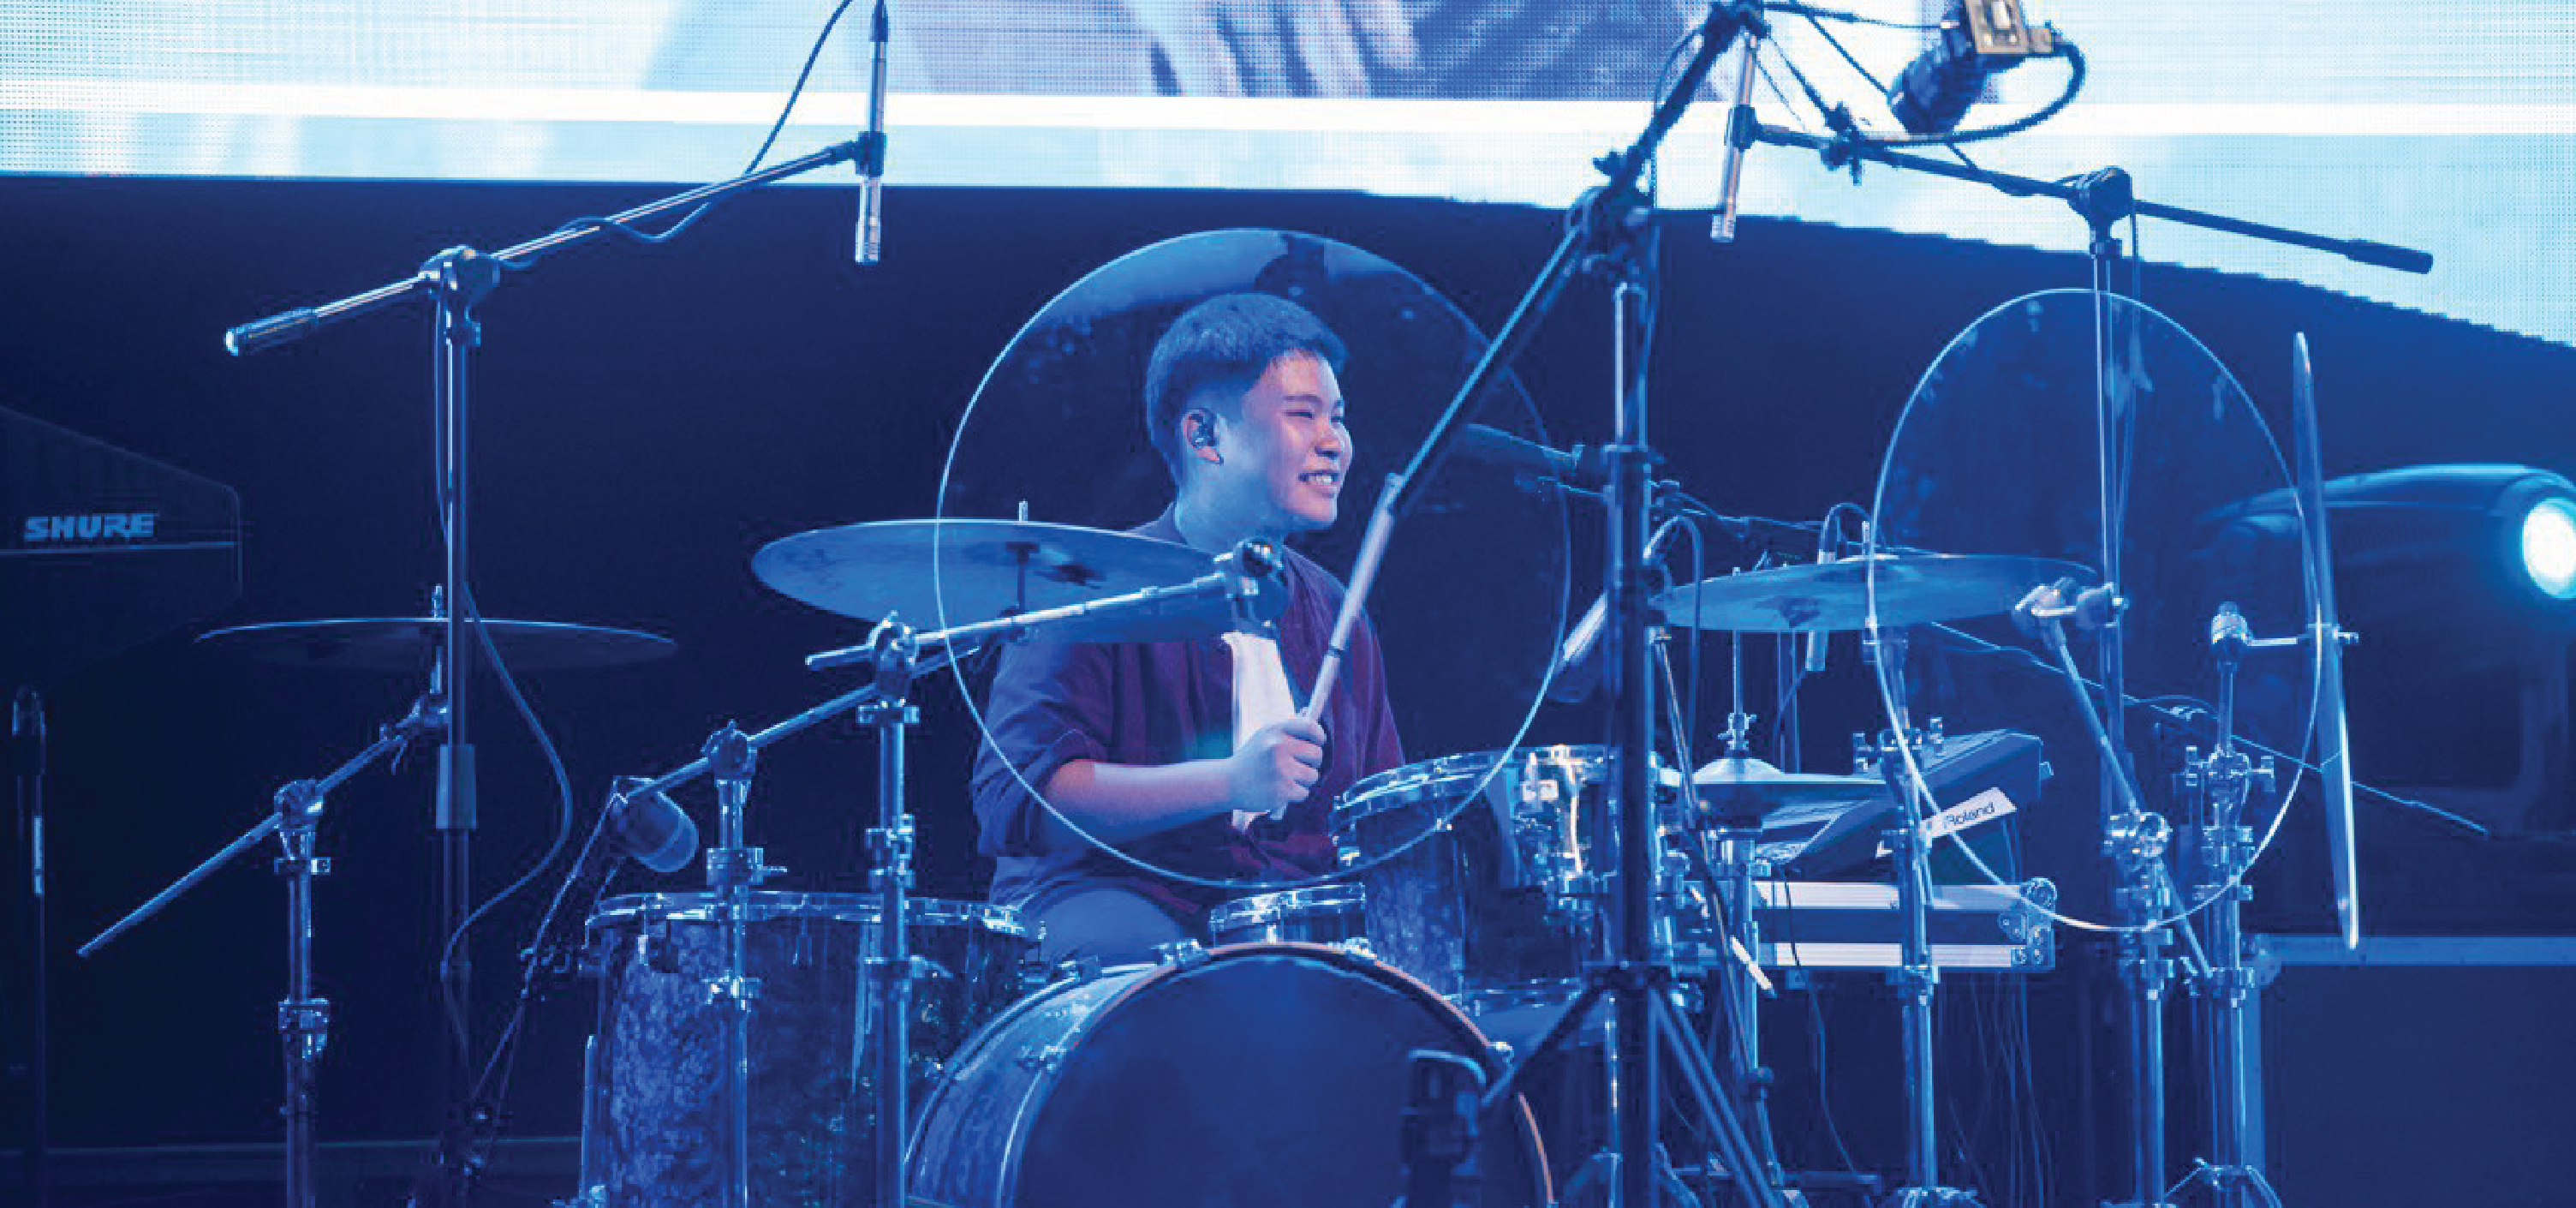 Meet Javier. He's Now the Youngest Drummer in Our Church!